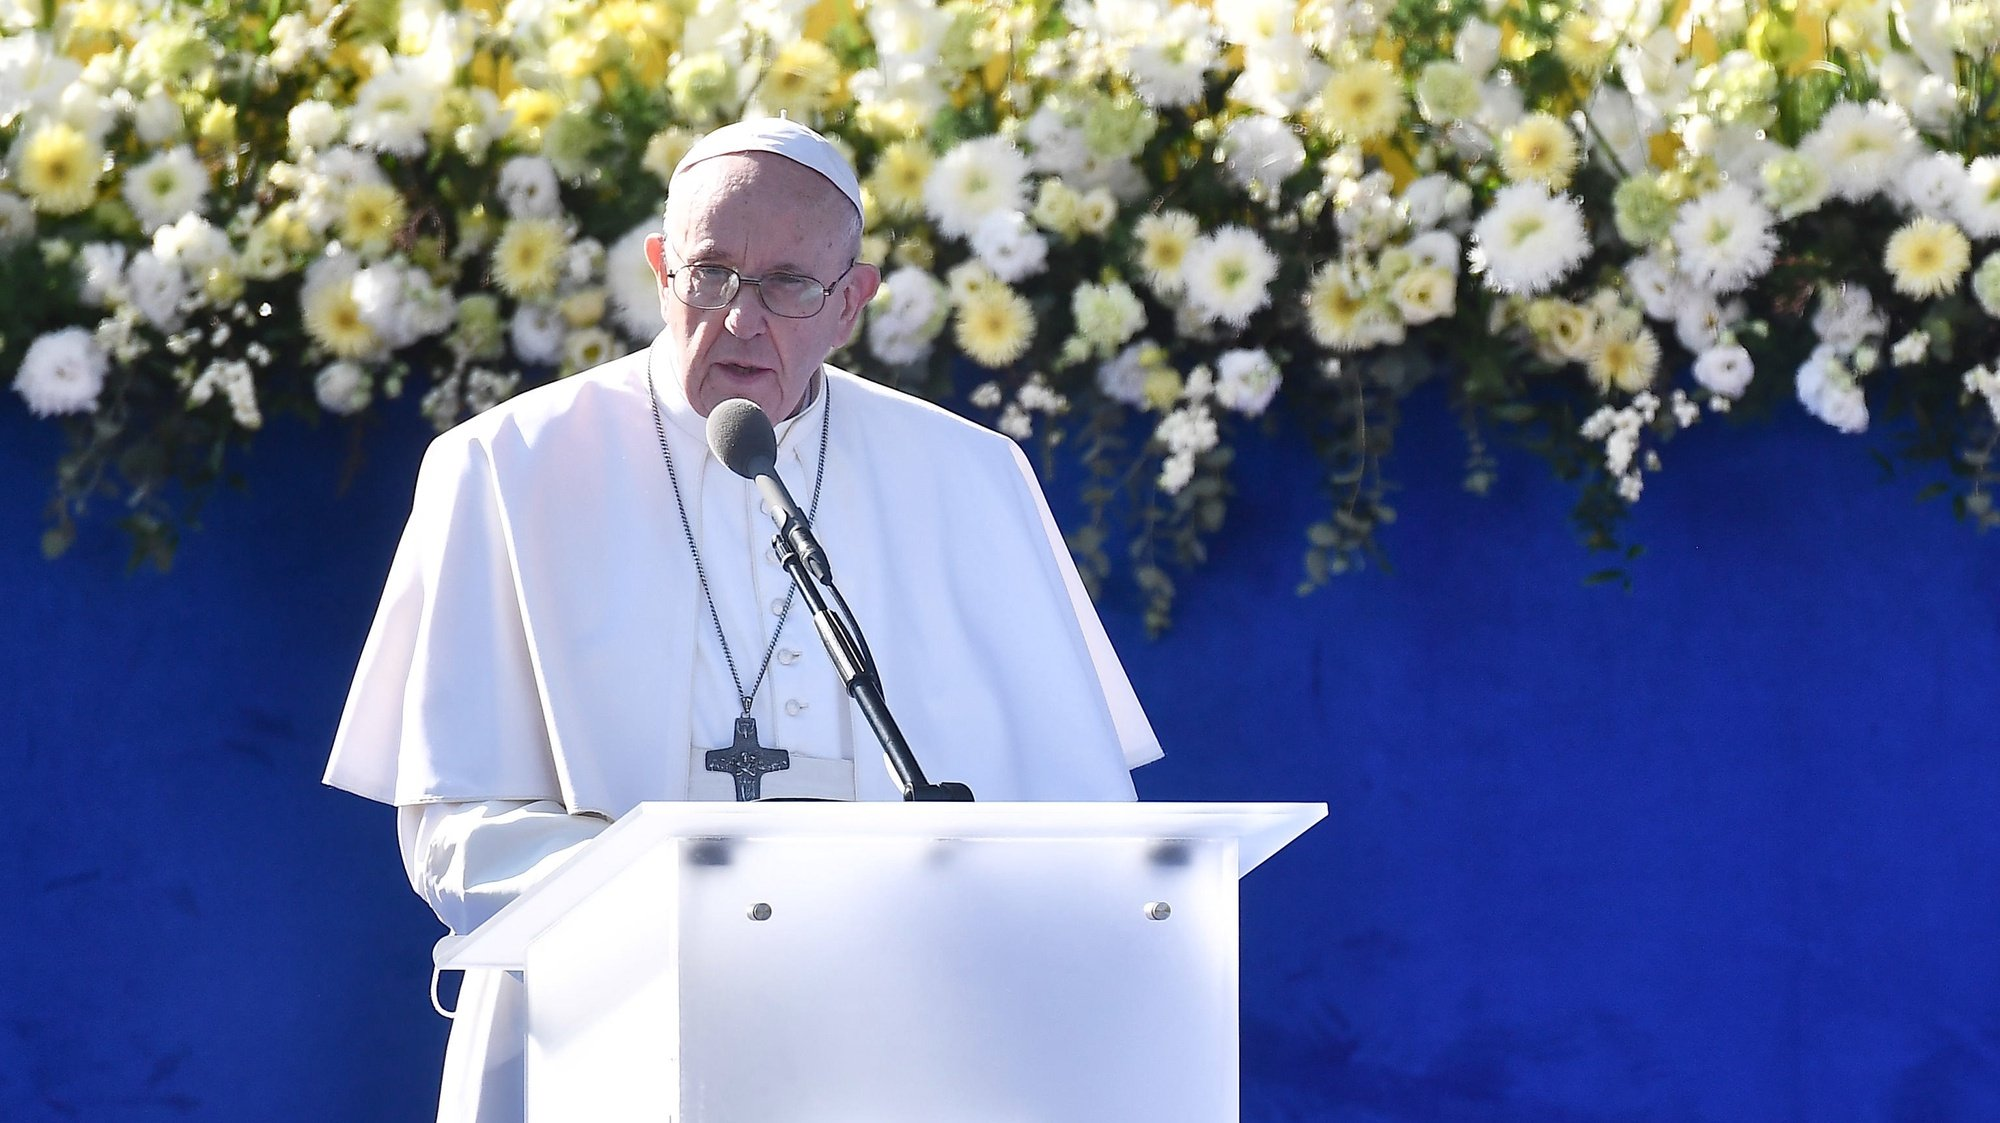 epa09465325 Pope Francis delivers a speech during a meeting with authorities, civil society and the diplomatic corps at the garden of the Presidential Palace in Bratislava, Slovakia, 13 September 2021.  EPA/LUCA ZENNARO